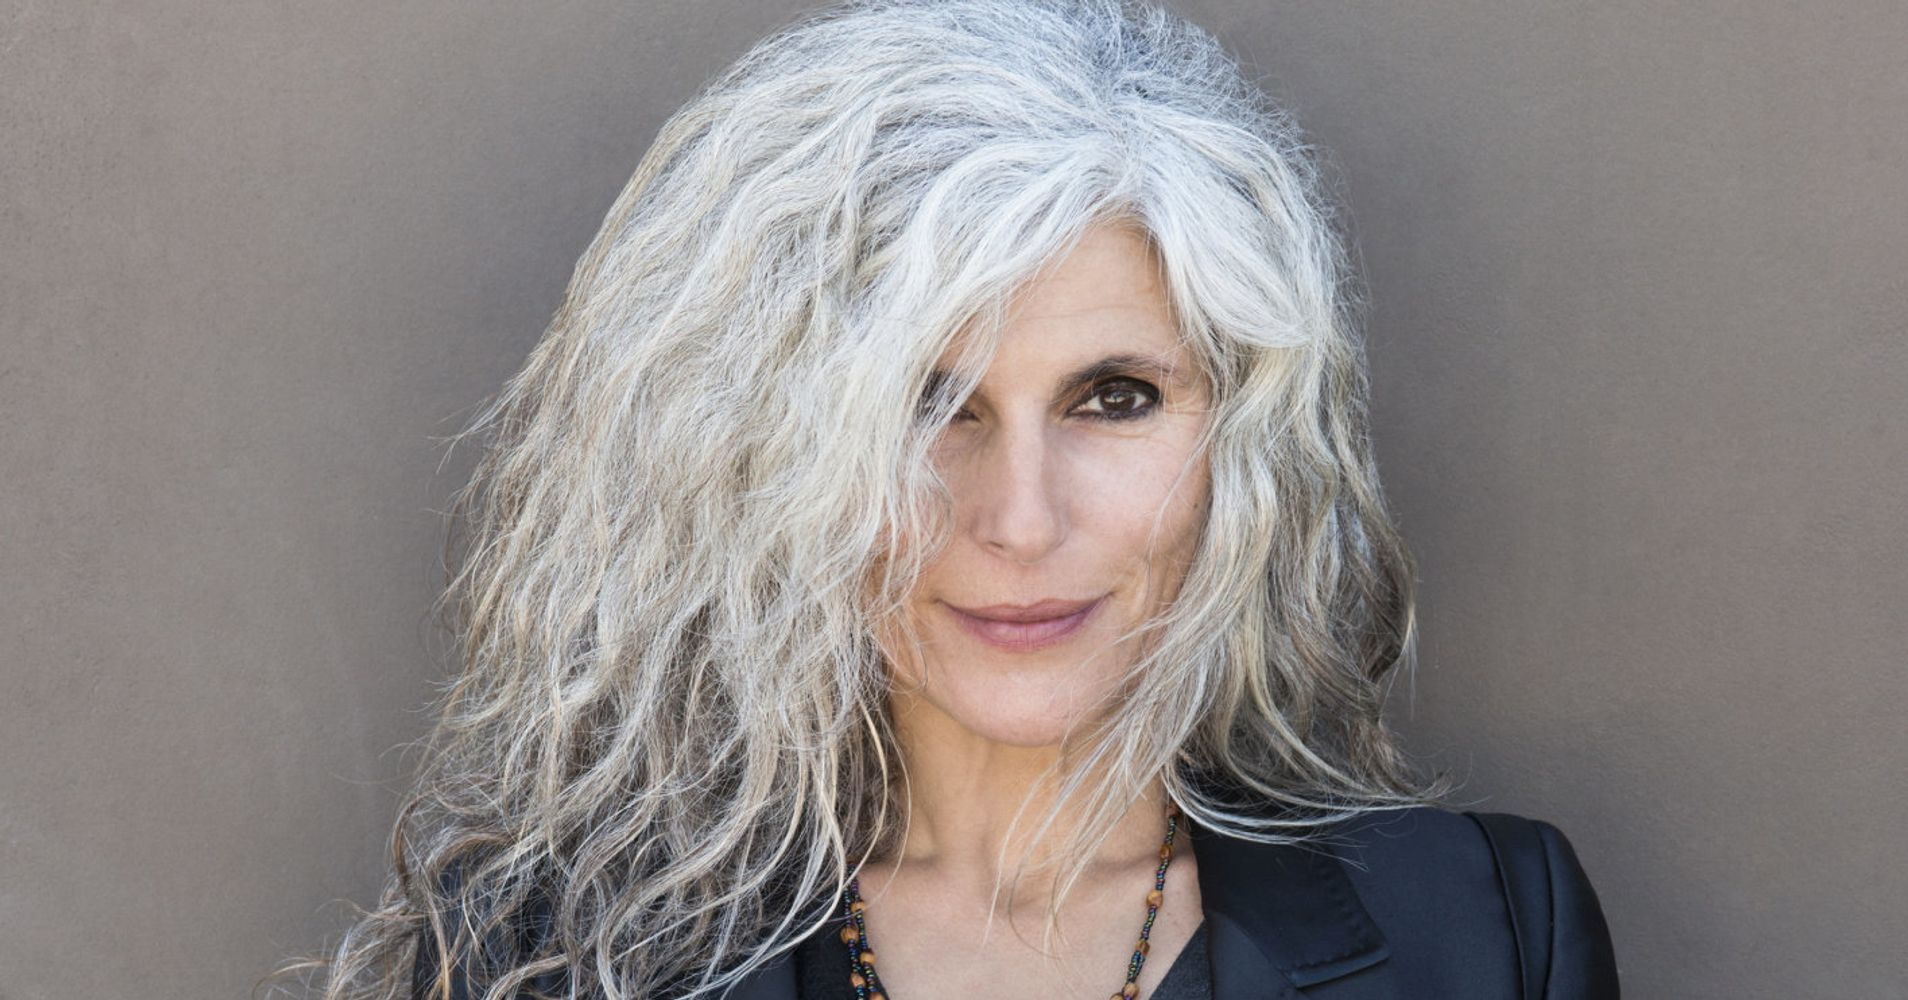 17 hairstyles that prove going gray (and white) is gorgeous | huffpost